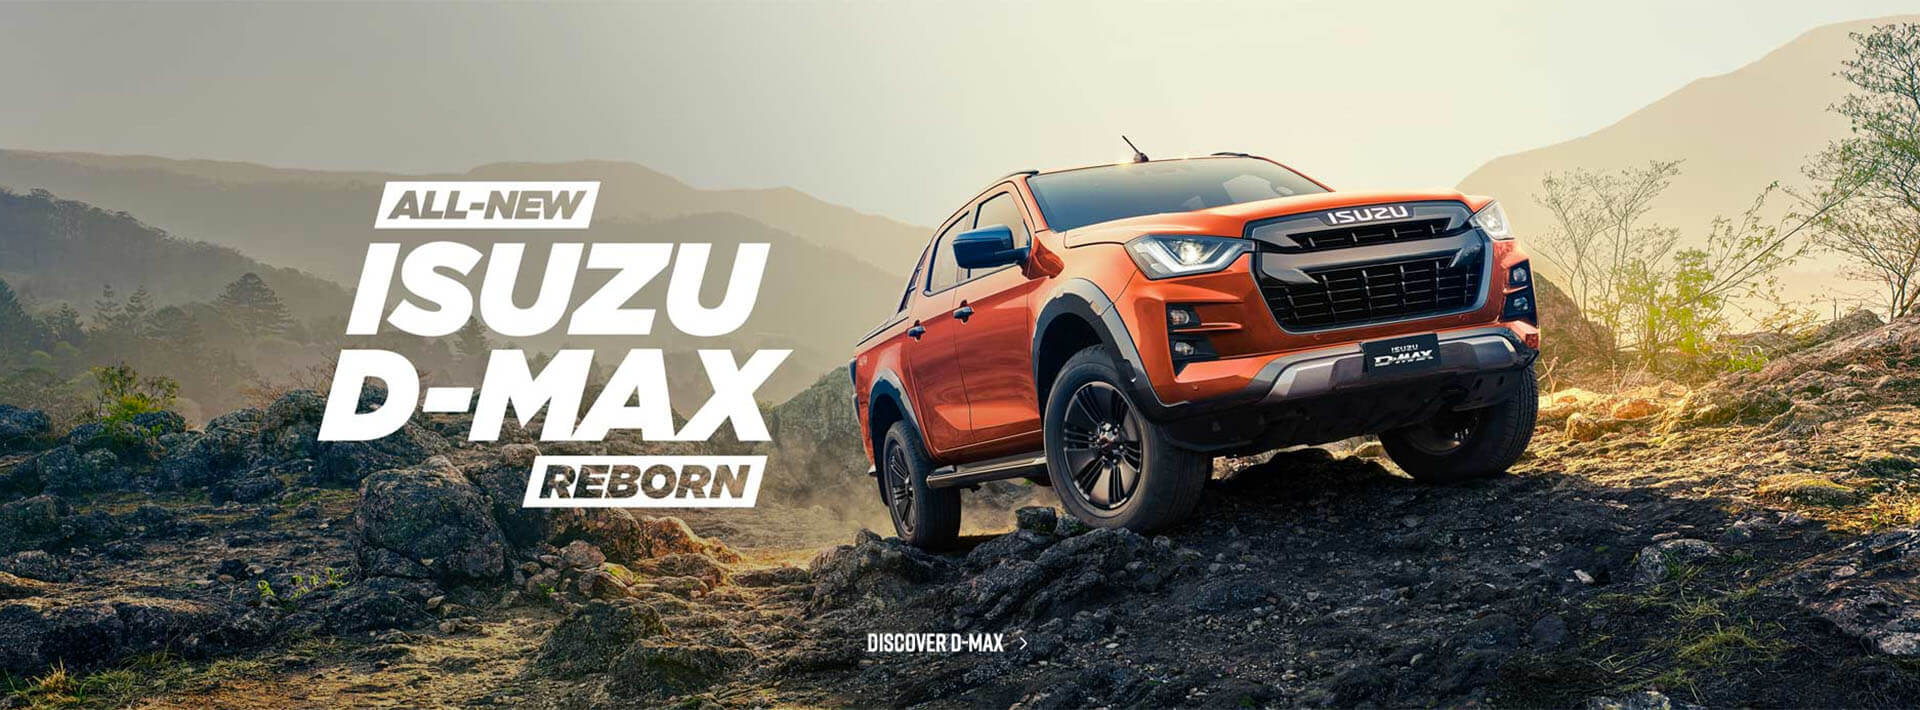 The All-New Isuzu D-MAX reborn. Discover more.